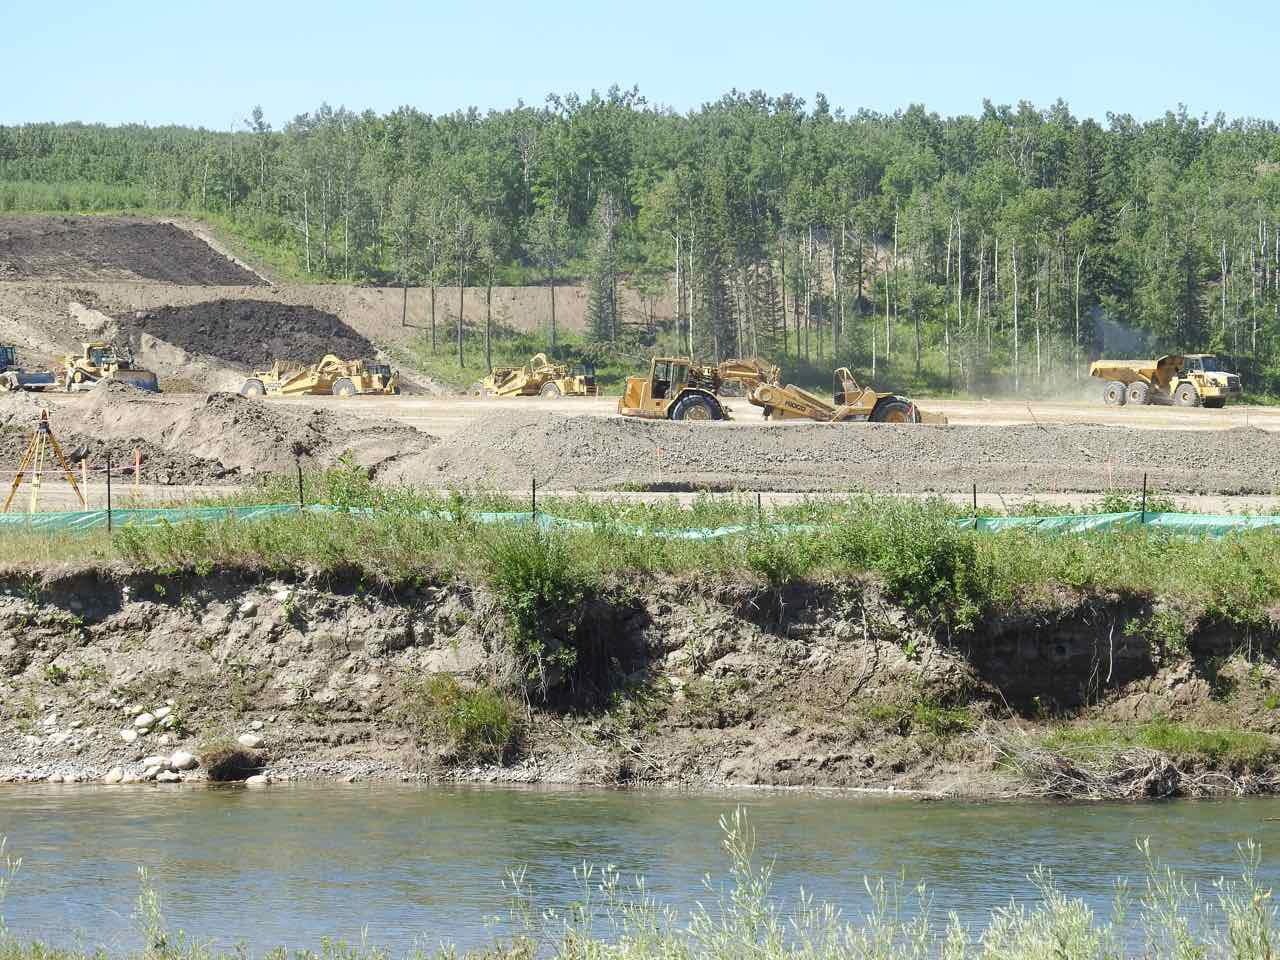 12_SWCRR-TUC-Weaselhead___Depositing_Fill_in_the_Elbow_River_Valley-July_24_2017.jpg